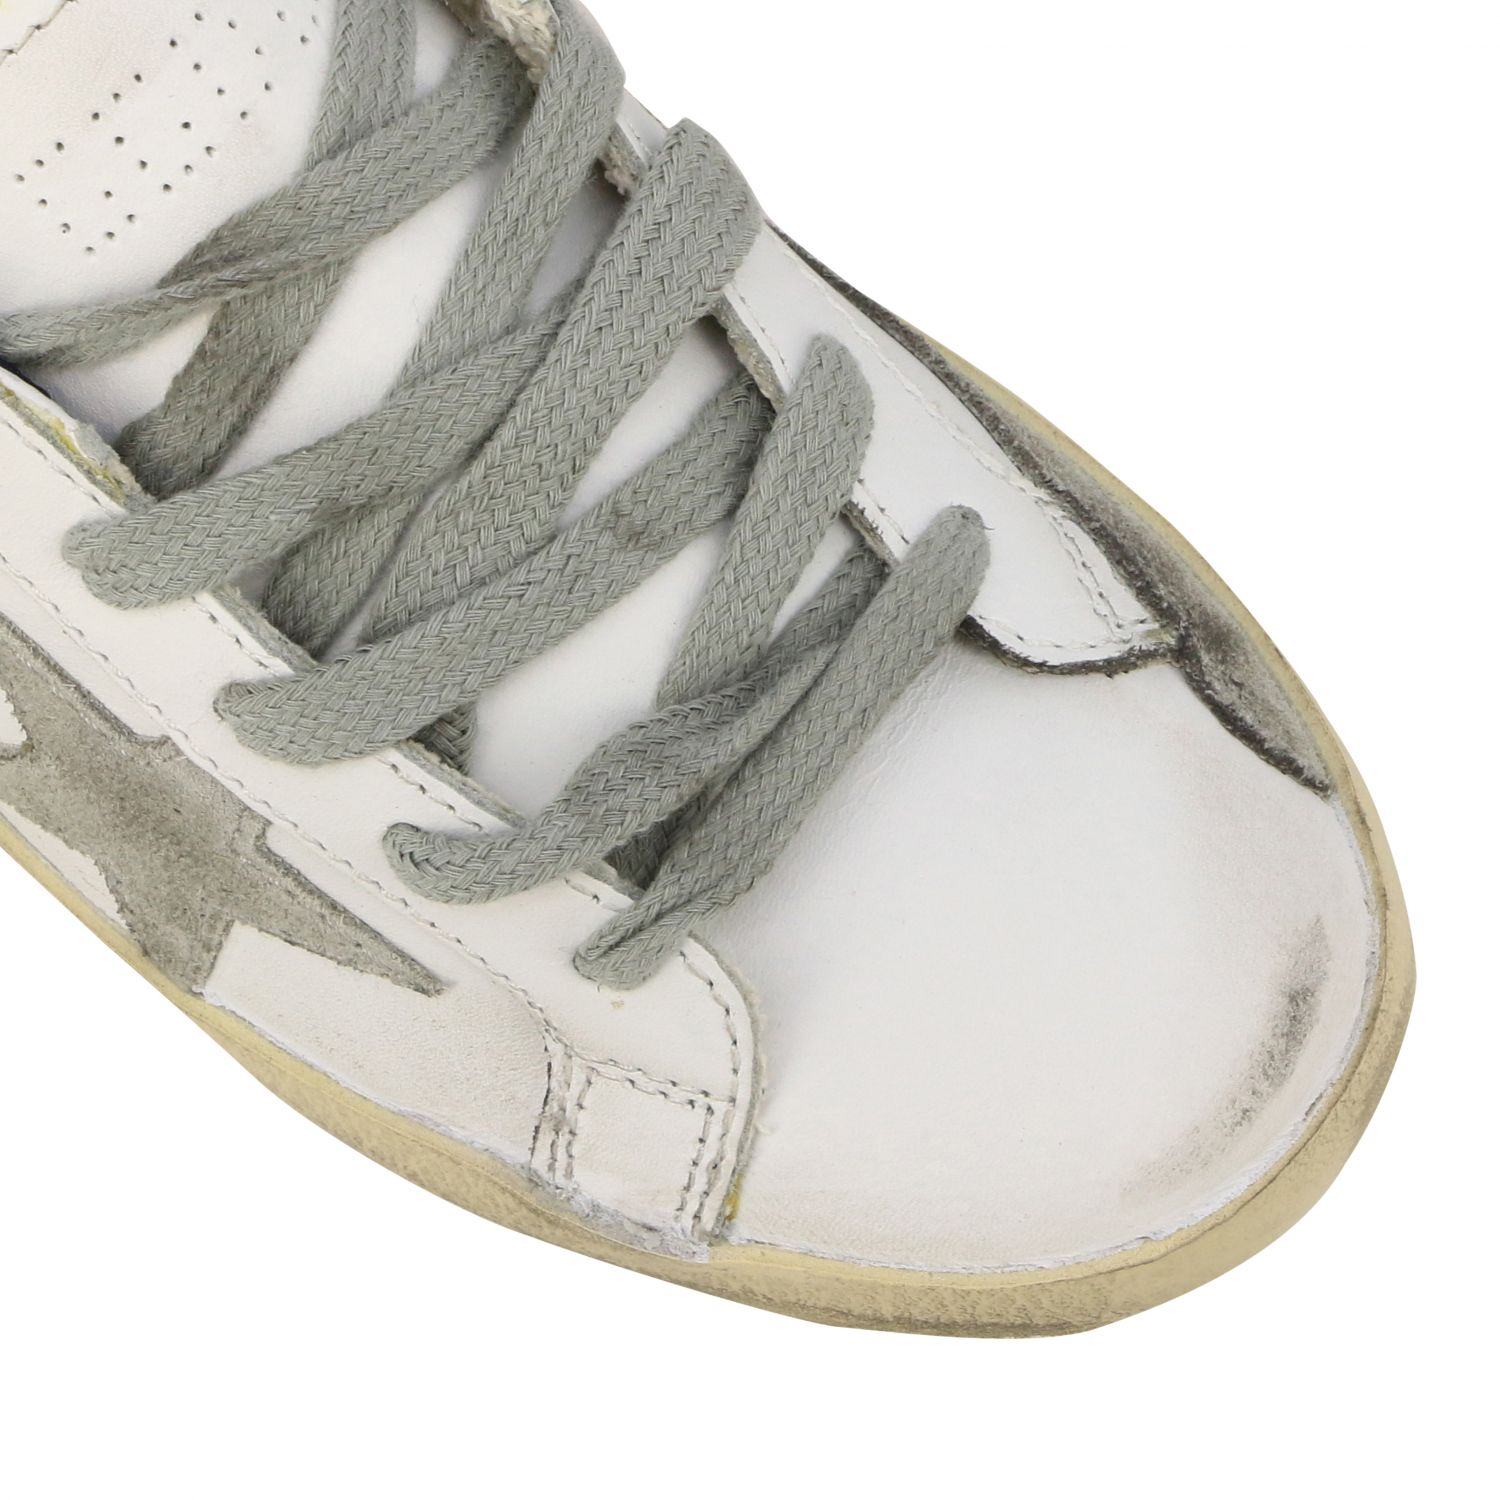 Superstar Golden Goose sneakers in leather and suede with star white 4